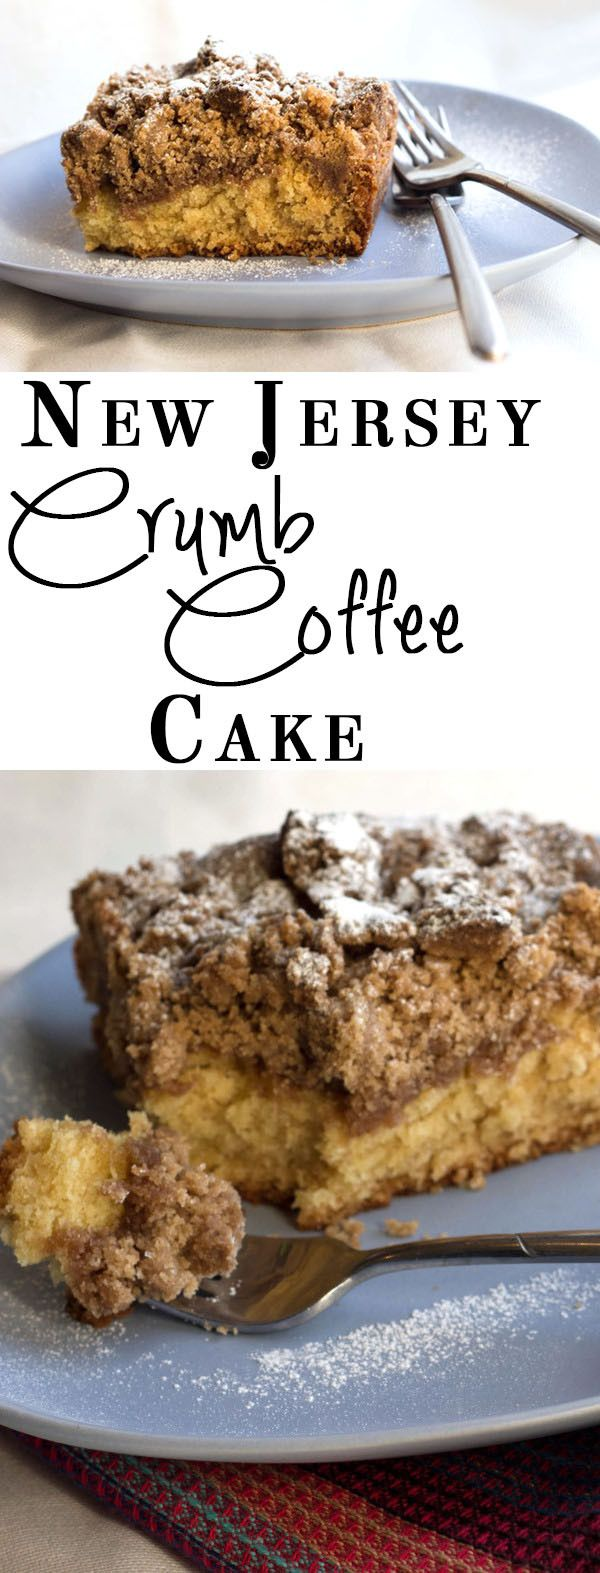 NJ Crumb Coffee Cake - Erren's Kitchen - A moist and delicious cake topped with an extra thick crumb topping - truly indulgent!